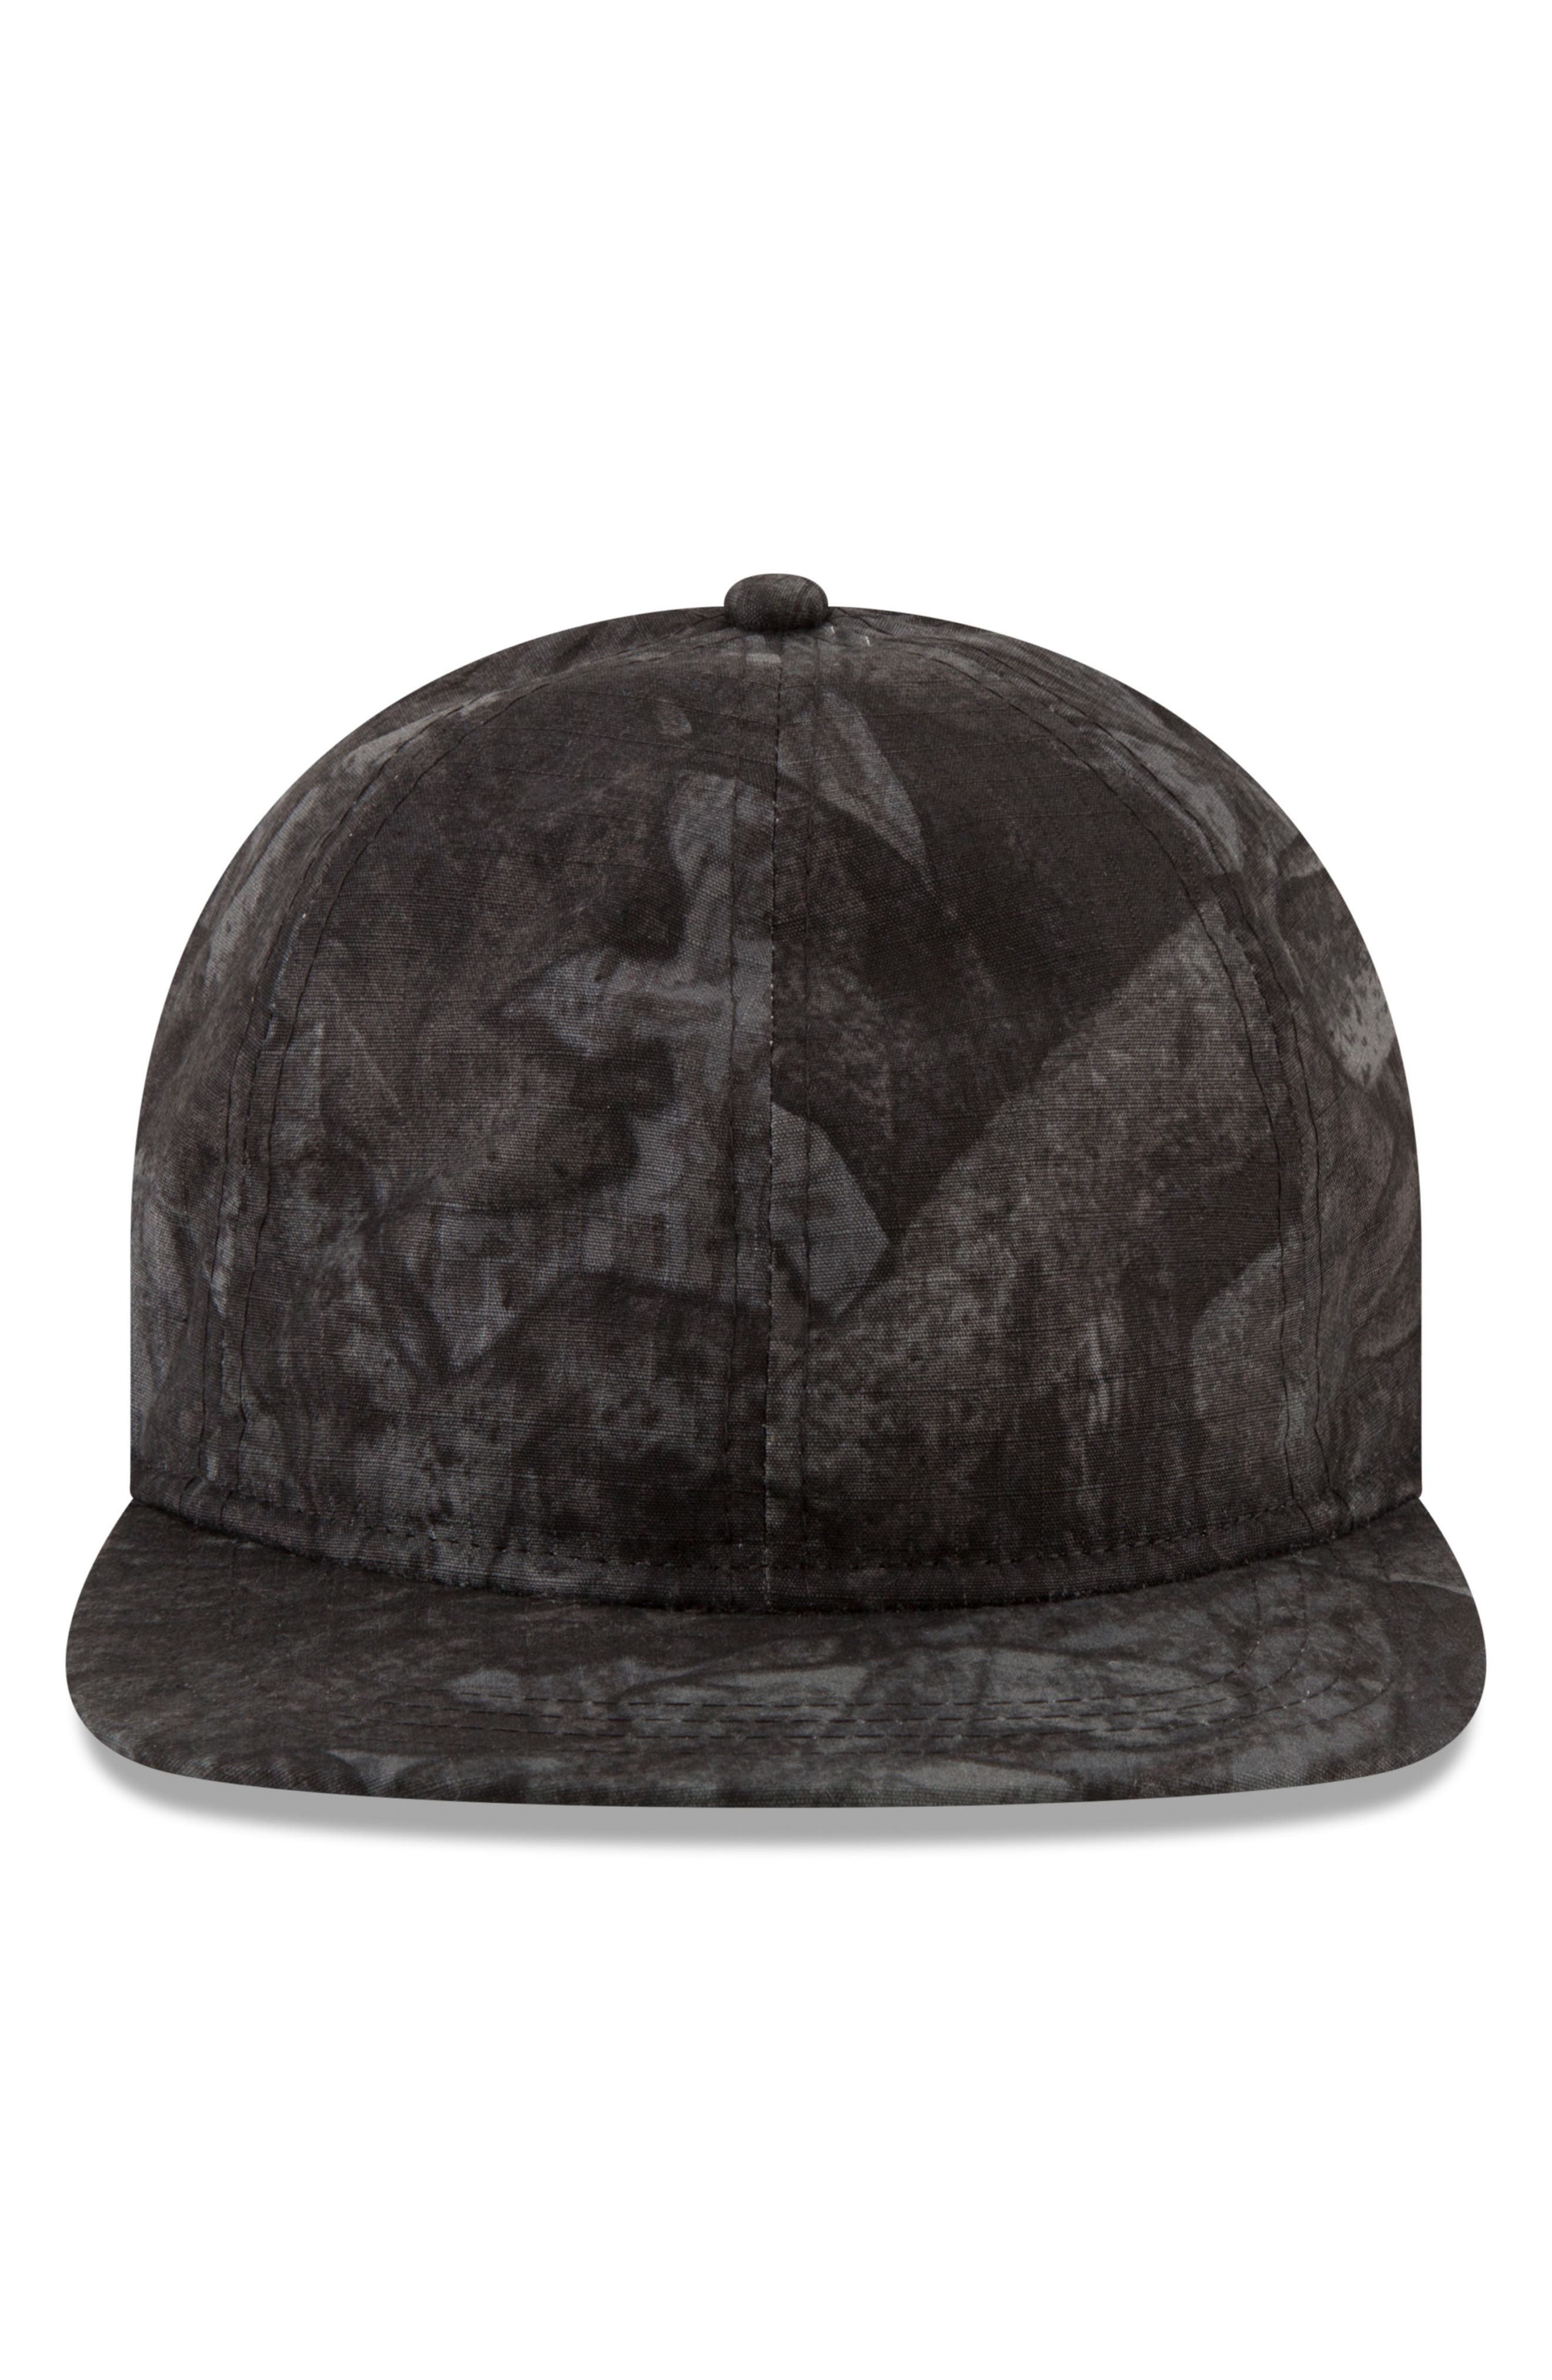 9Twenty Tonal Camo Flat Brim Hat,                             Main thumbnail 1, color,                             BLACK